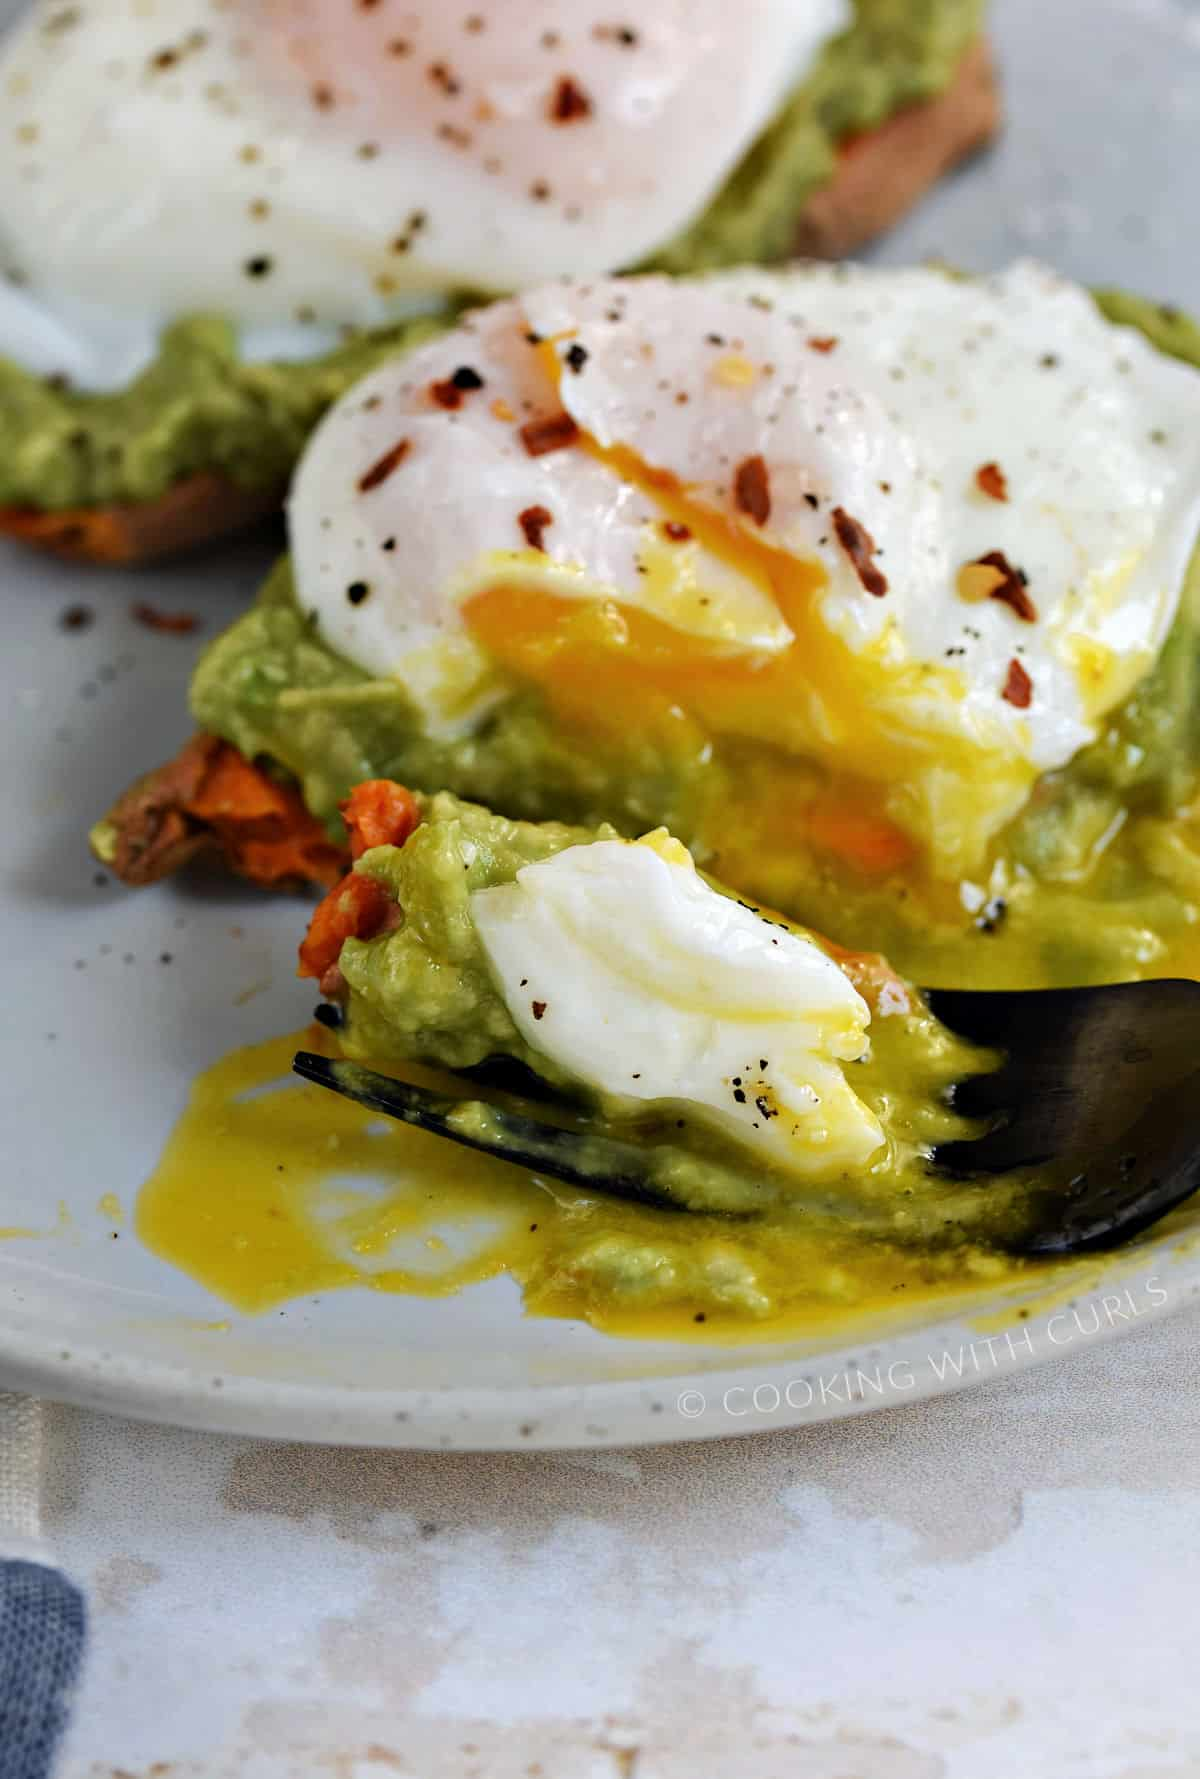 A fork sliced through the poached egg, avocado, and sweet potato and resting on a plate.